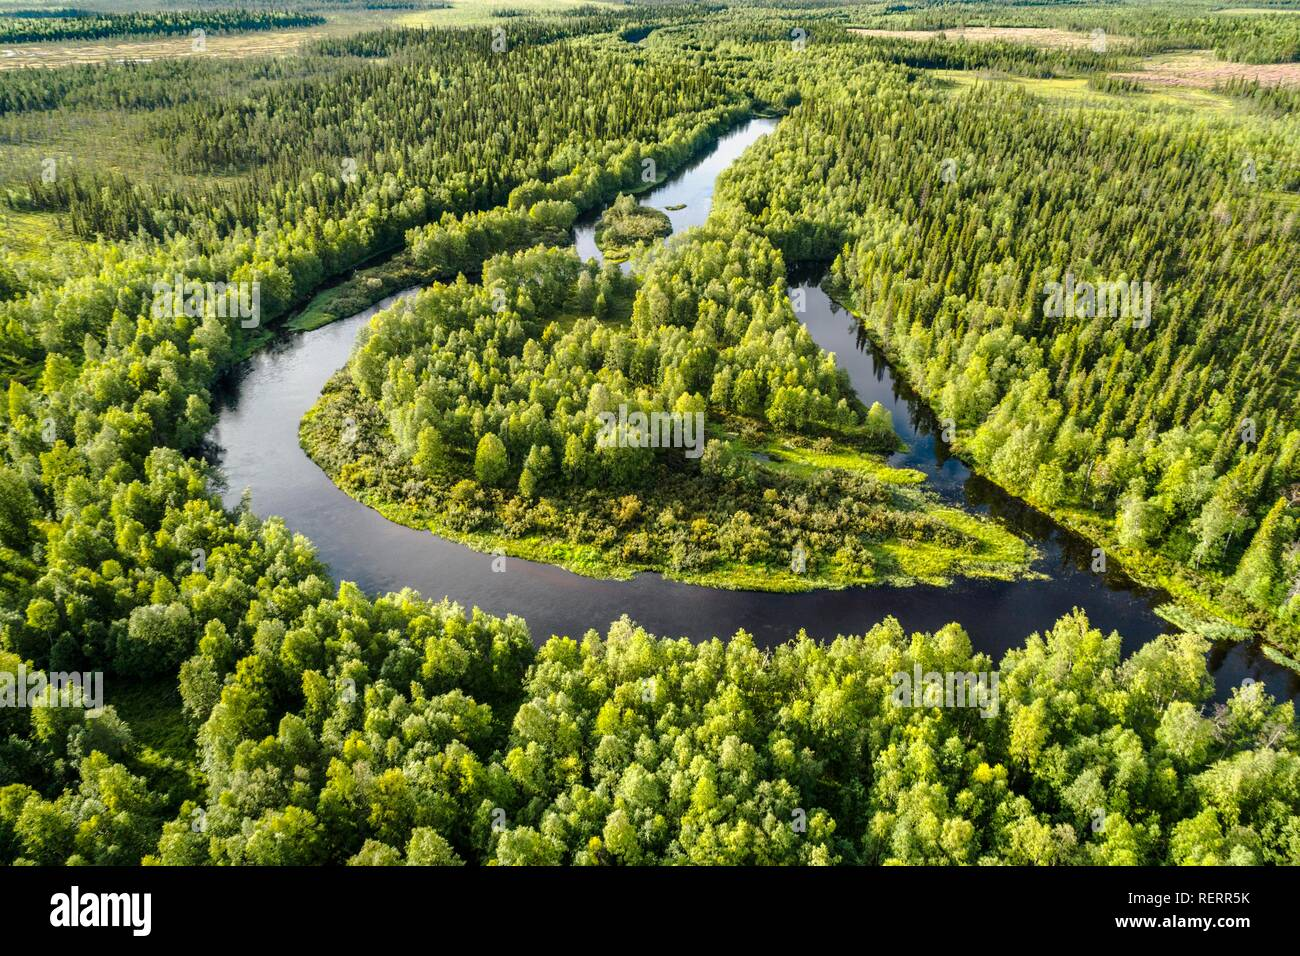 Drone view, aerial photo of a river loop, meander of the Kapsajoki in the boreal arctic forest, Kittilä, Lapland, Finland - Stock Image